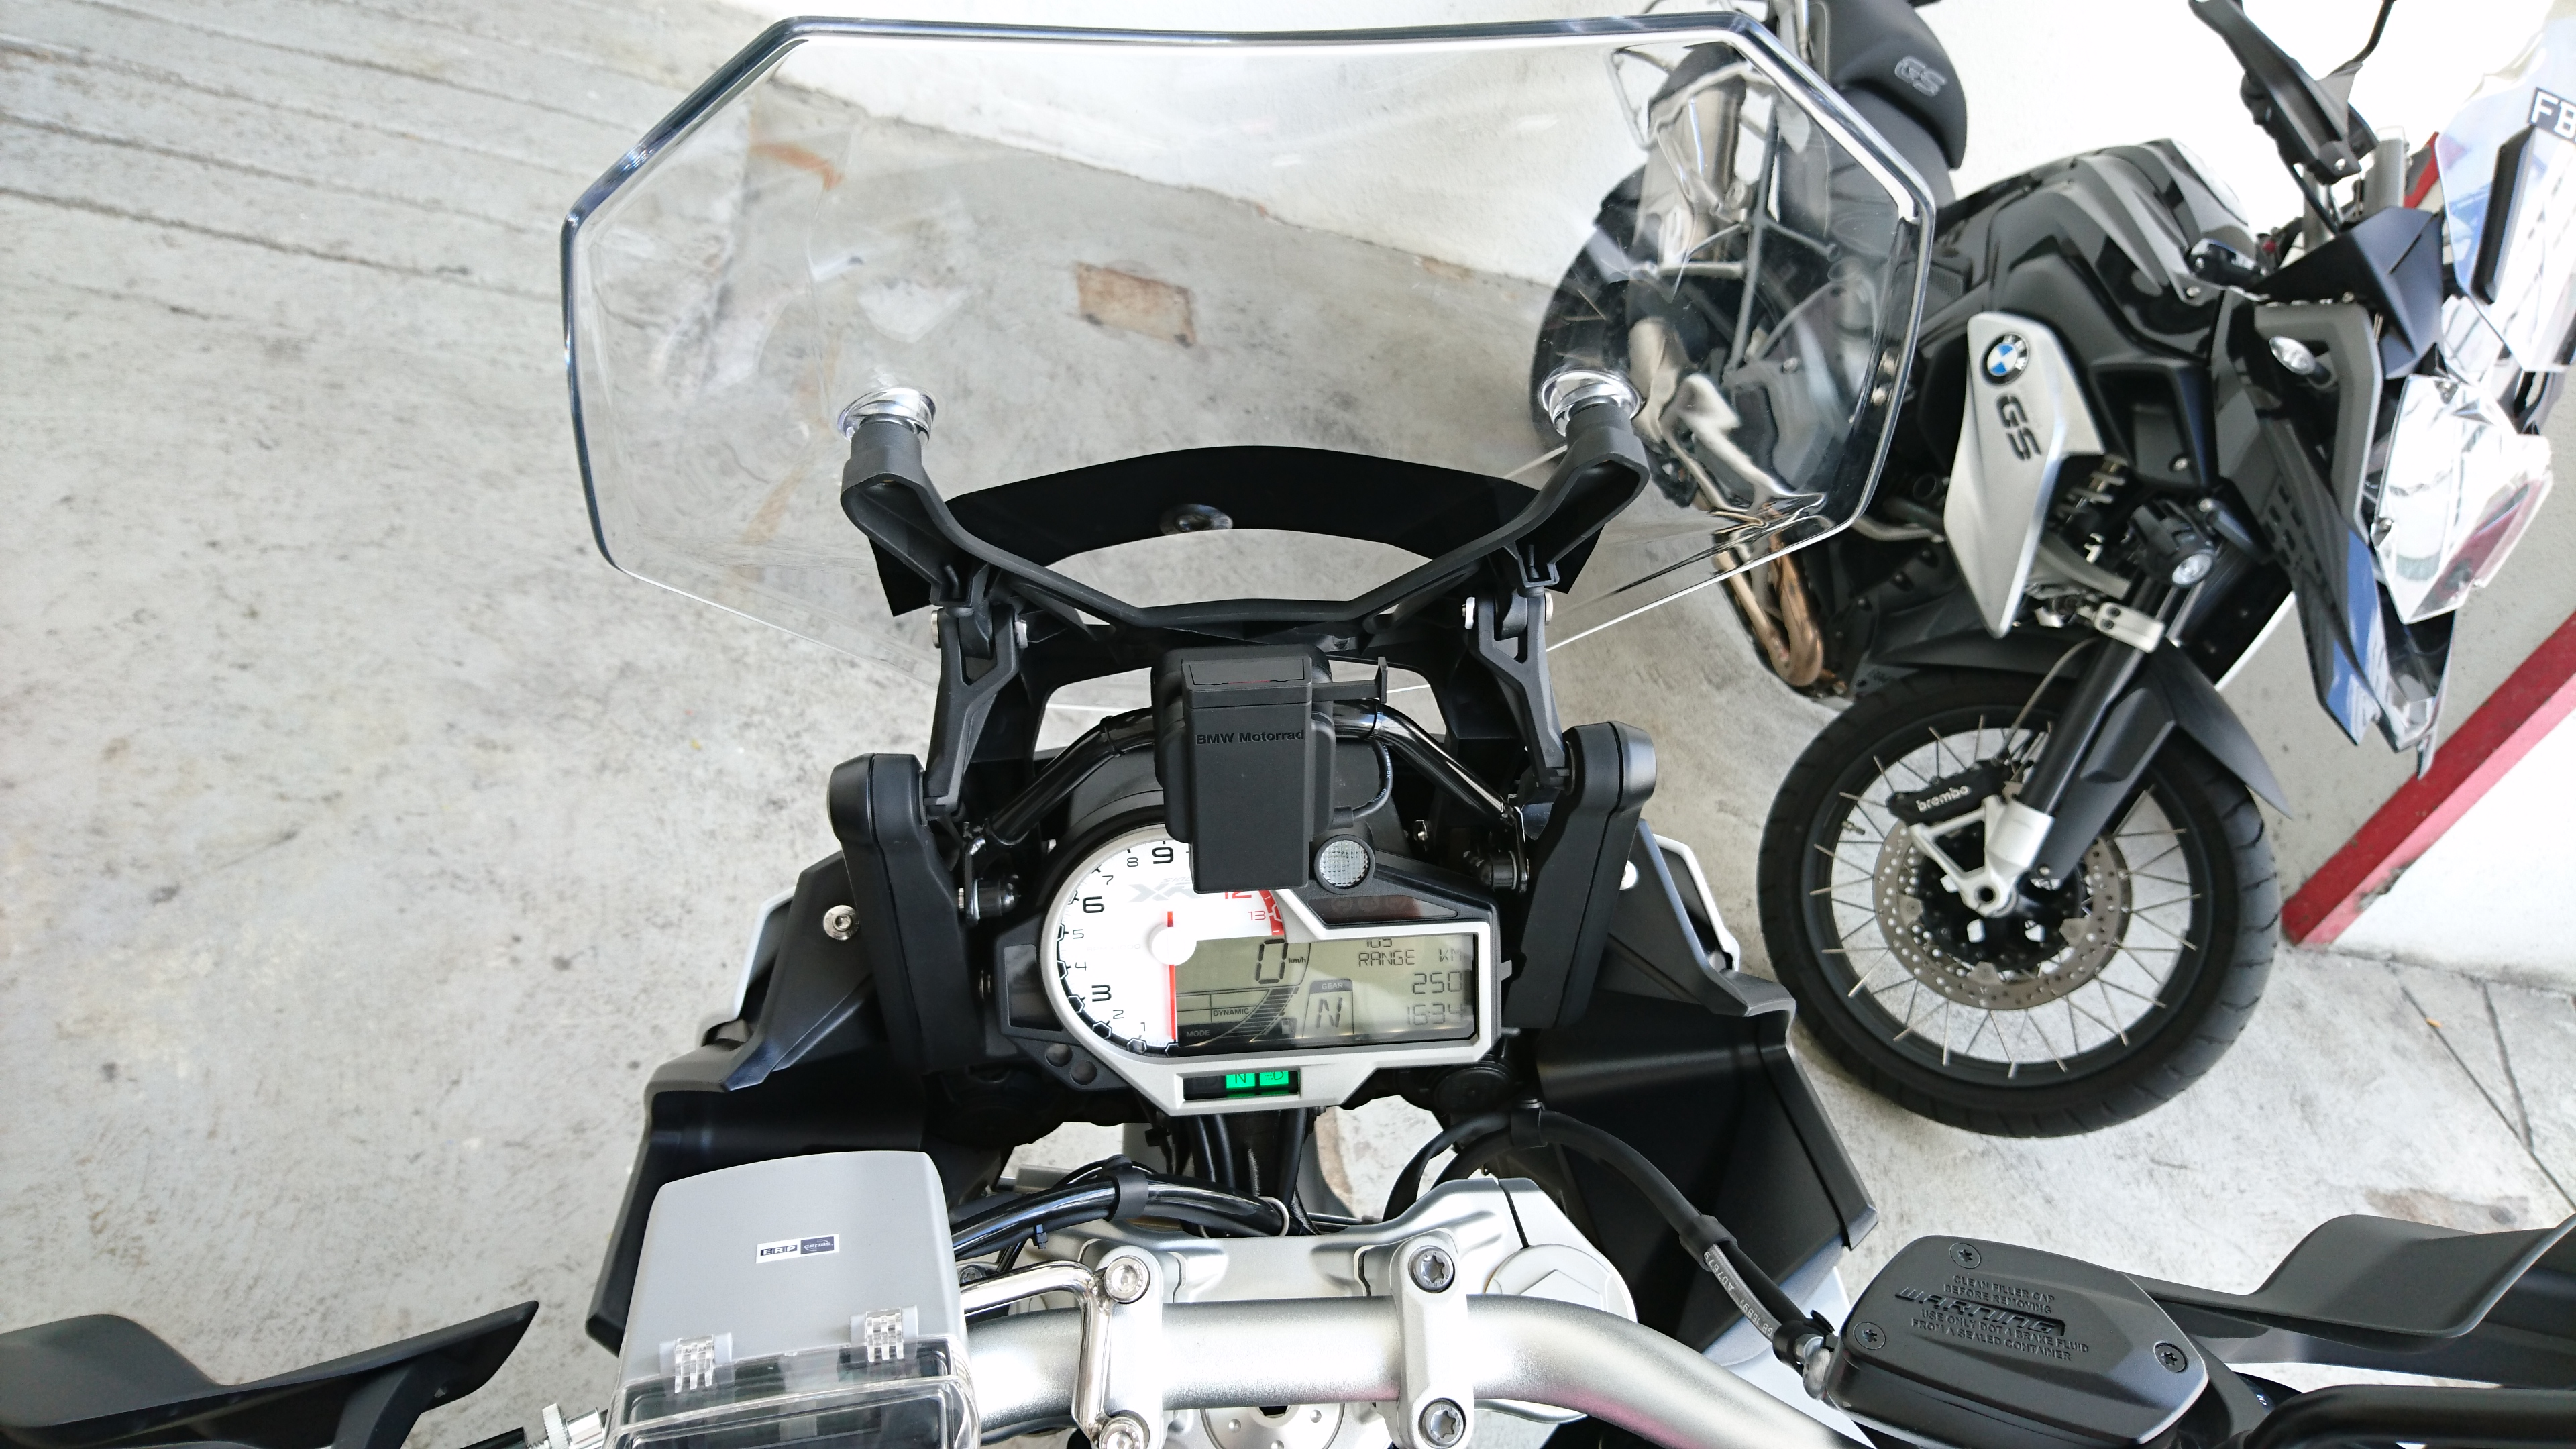 Instrument Cluster for the BMW S1000XR